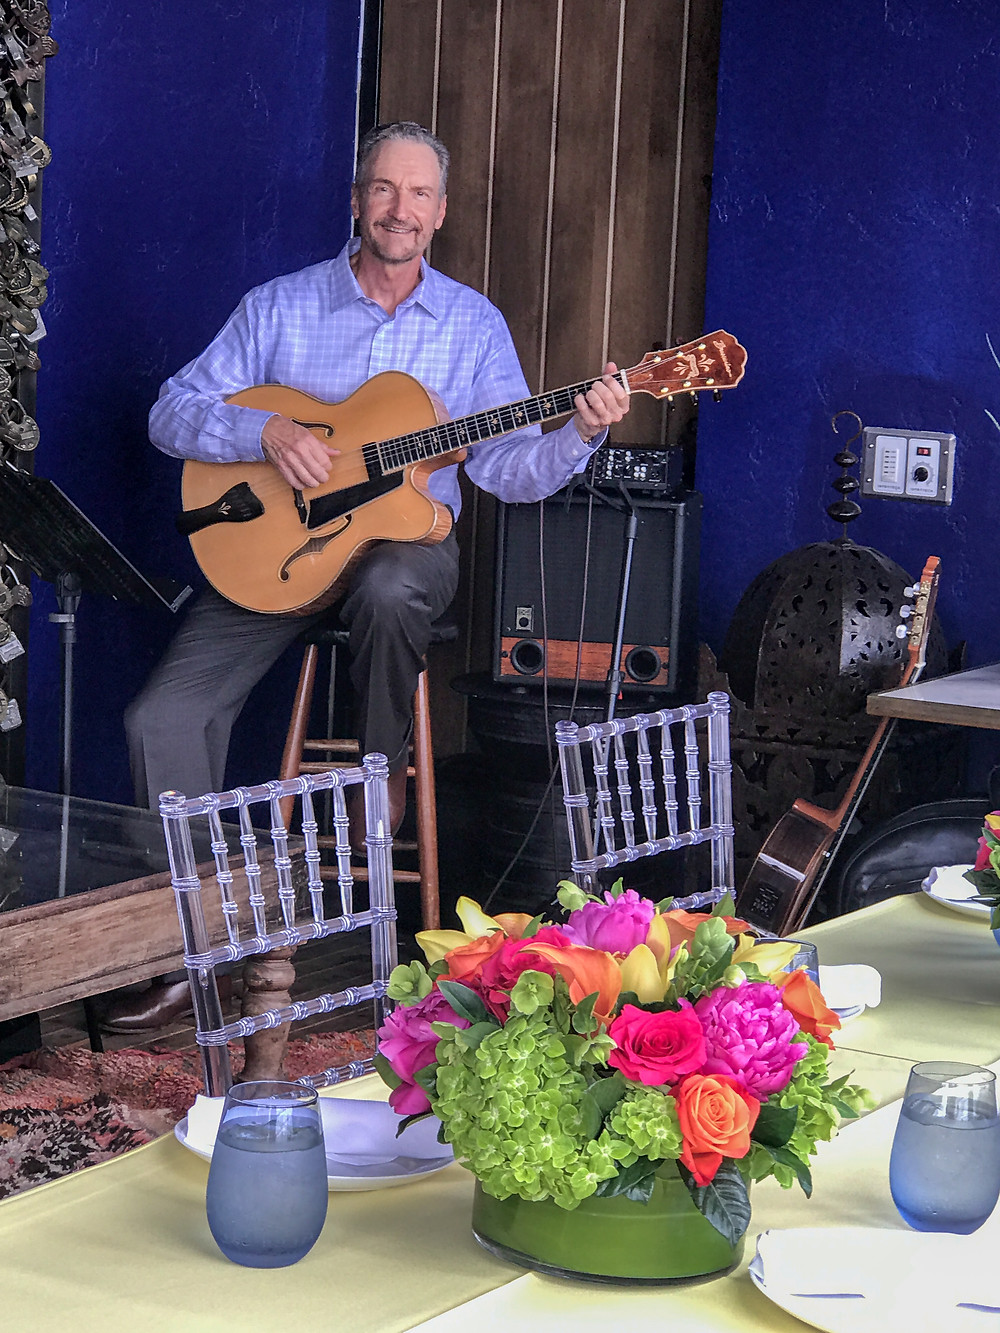 Highland Park lunch event music